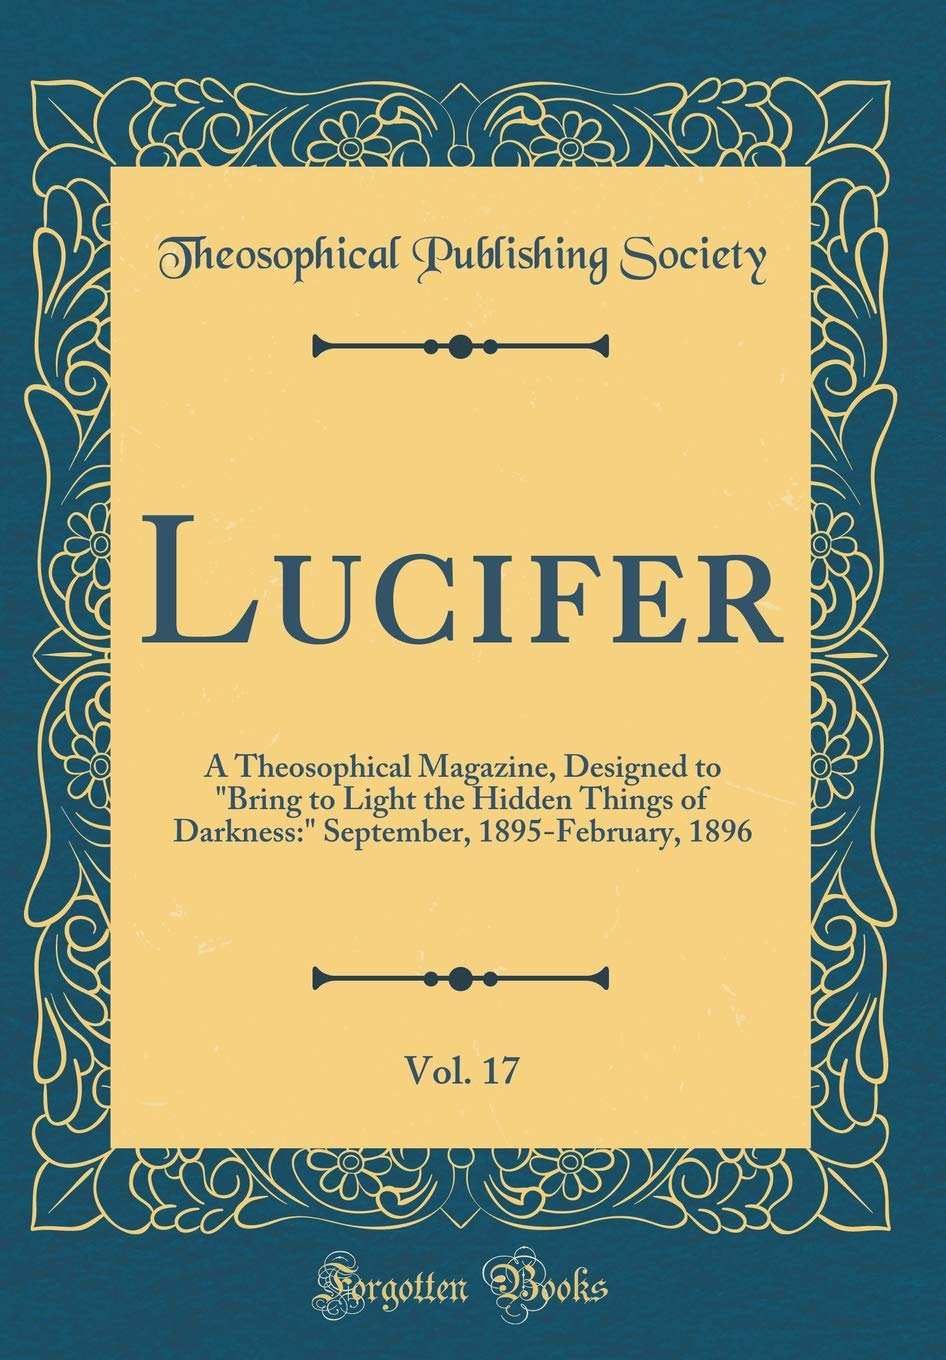 """Lucifer, Vol. 17: A Theosophical Magazine, Designed to """"Bring to Light the Hidden Things of Darkness:"""" September, 1895-February, 1896 (Classic Reprint) pdf epub"""